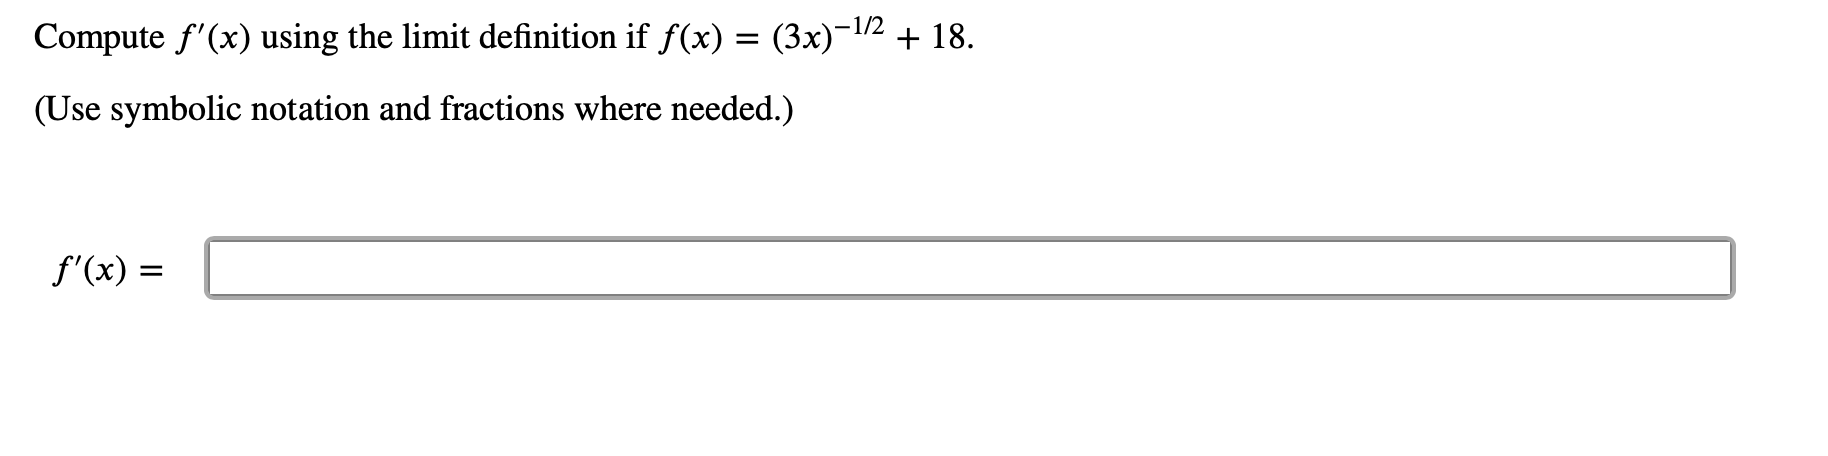 Compute f'(x) using the limit definition if f(x) = (3x)-1/2 + 18 (Use symbolic notation and fractions where needed. f'(x)